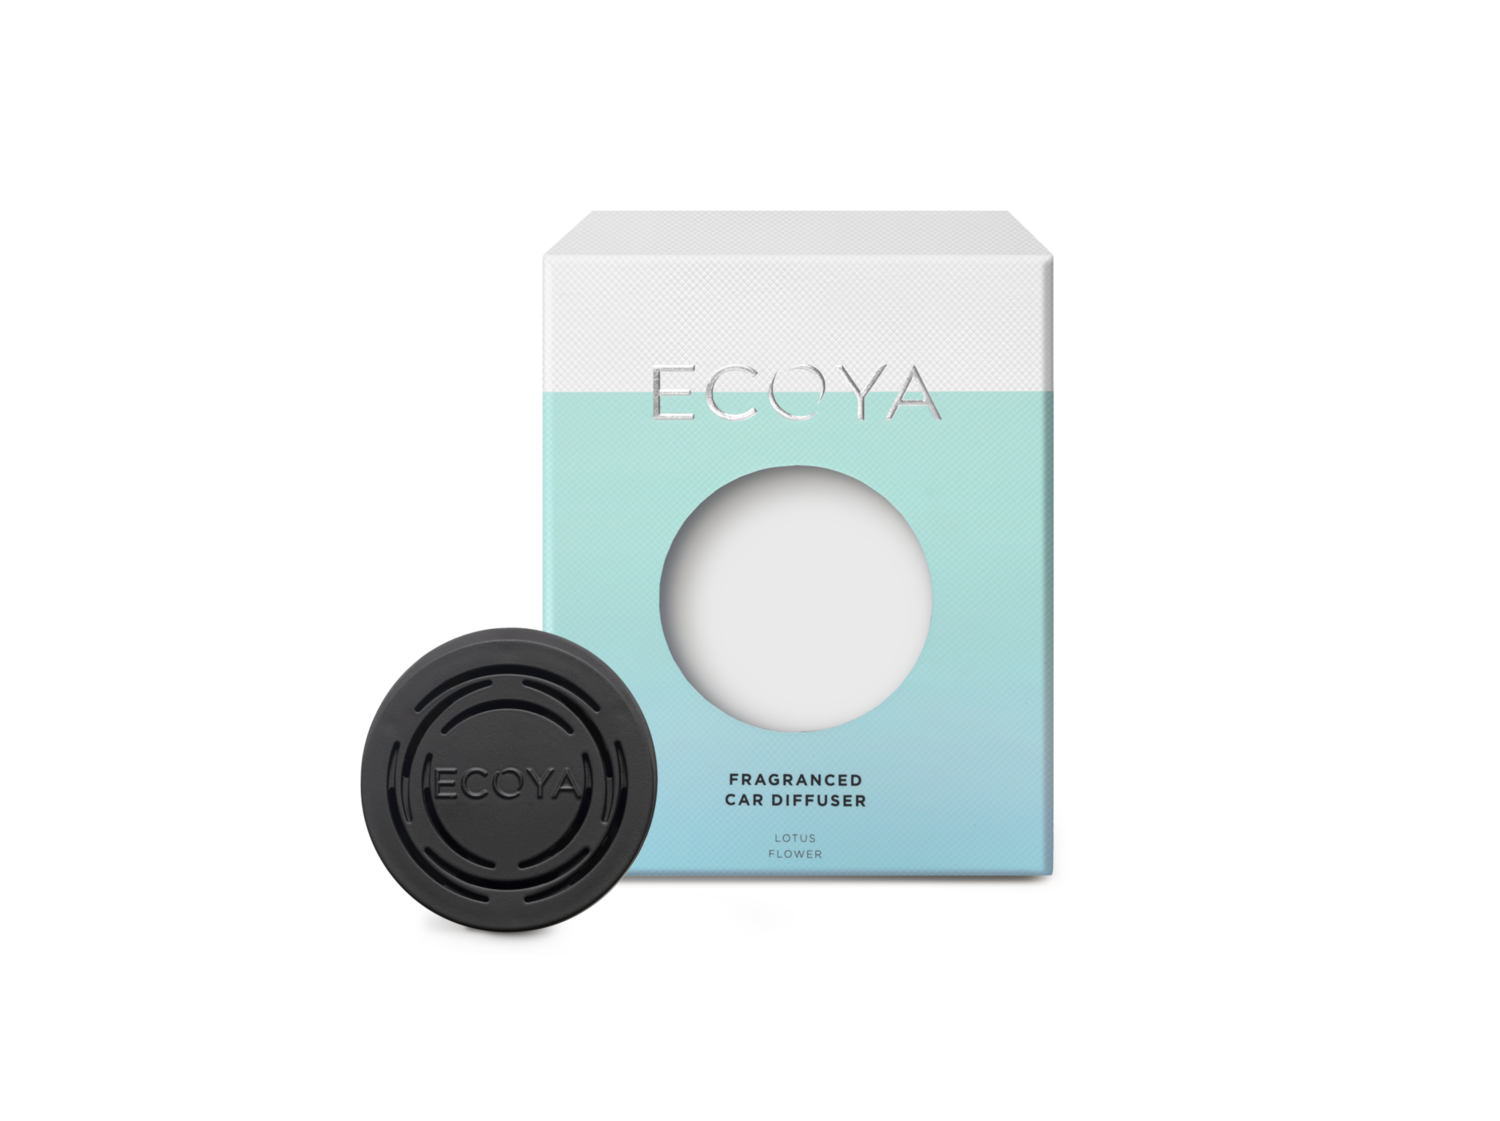 Ecoya Car Diffuser - Lotus Flower